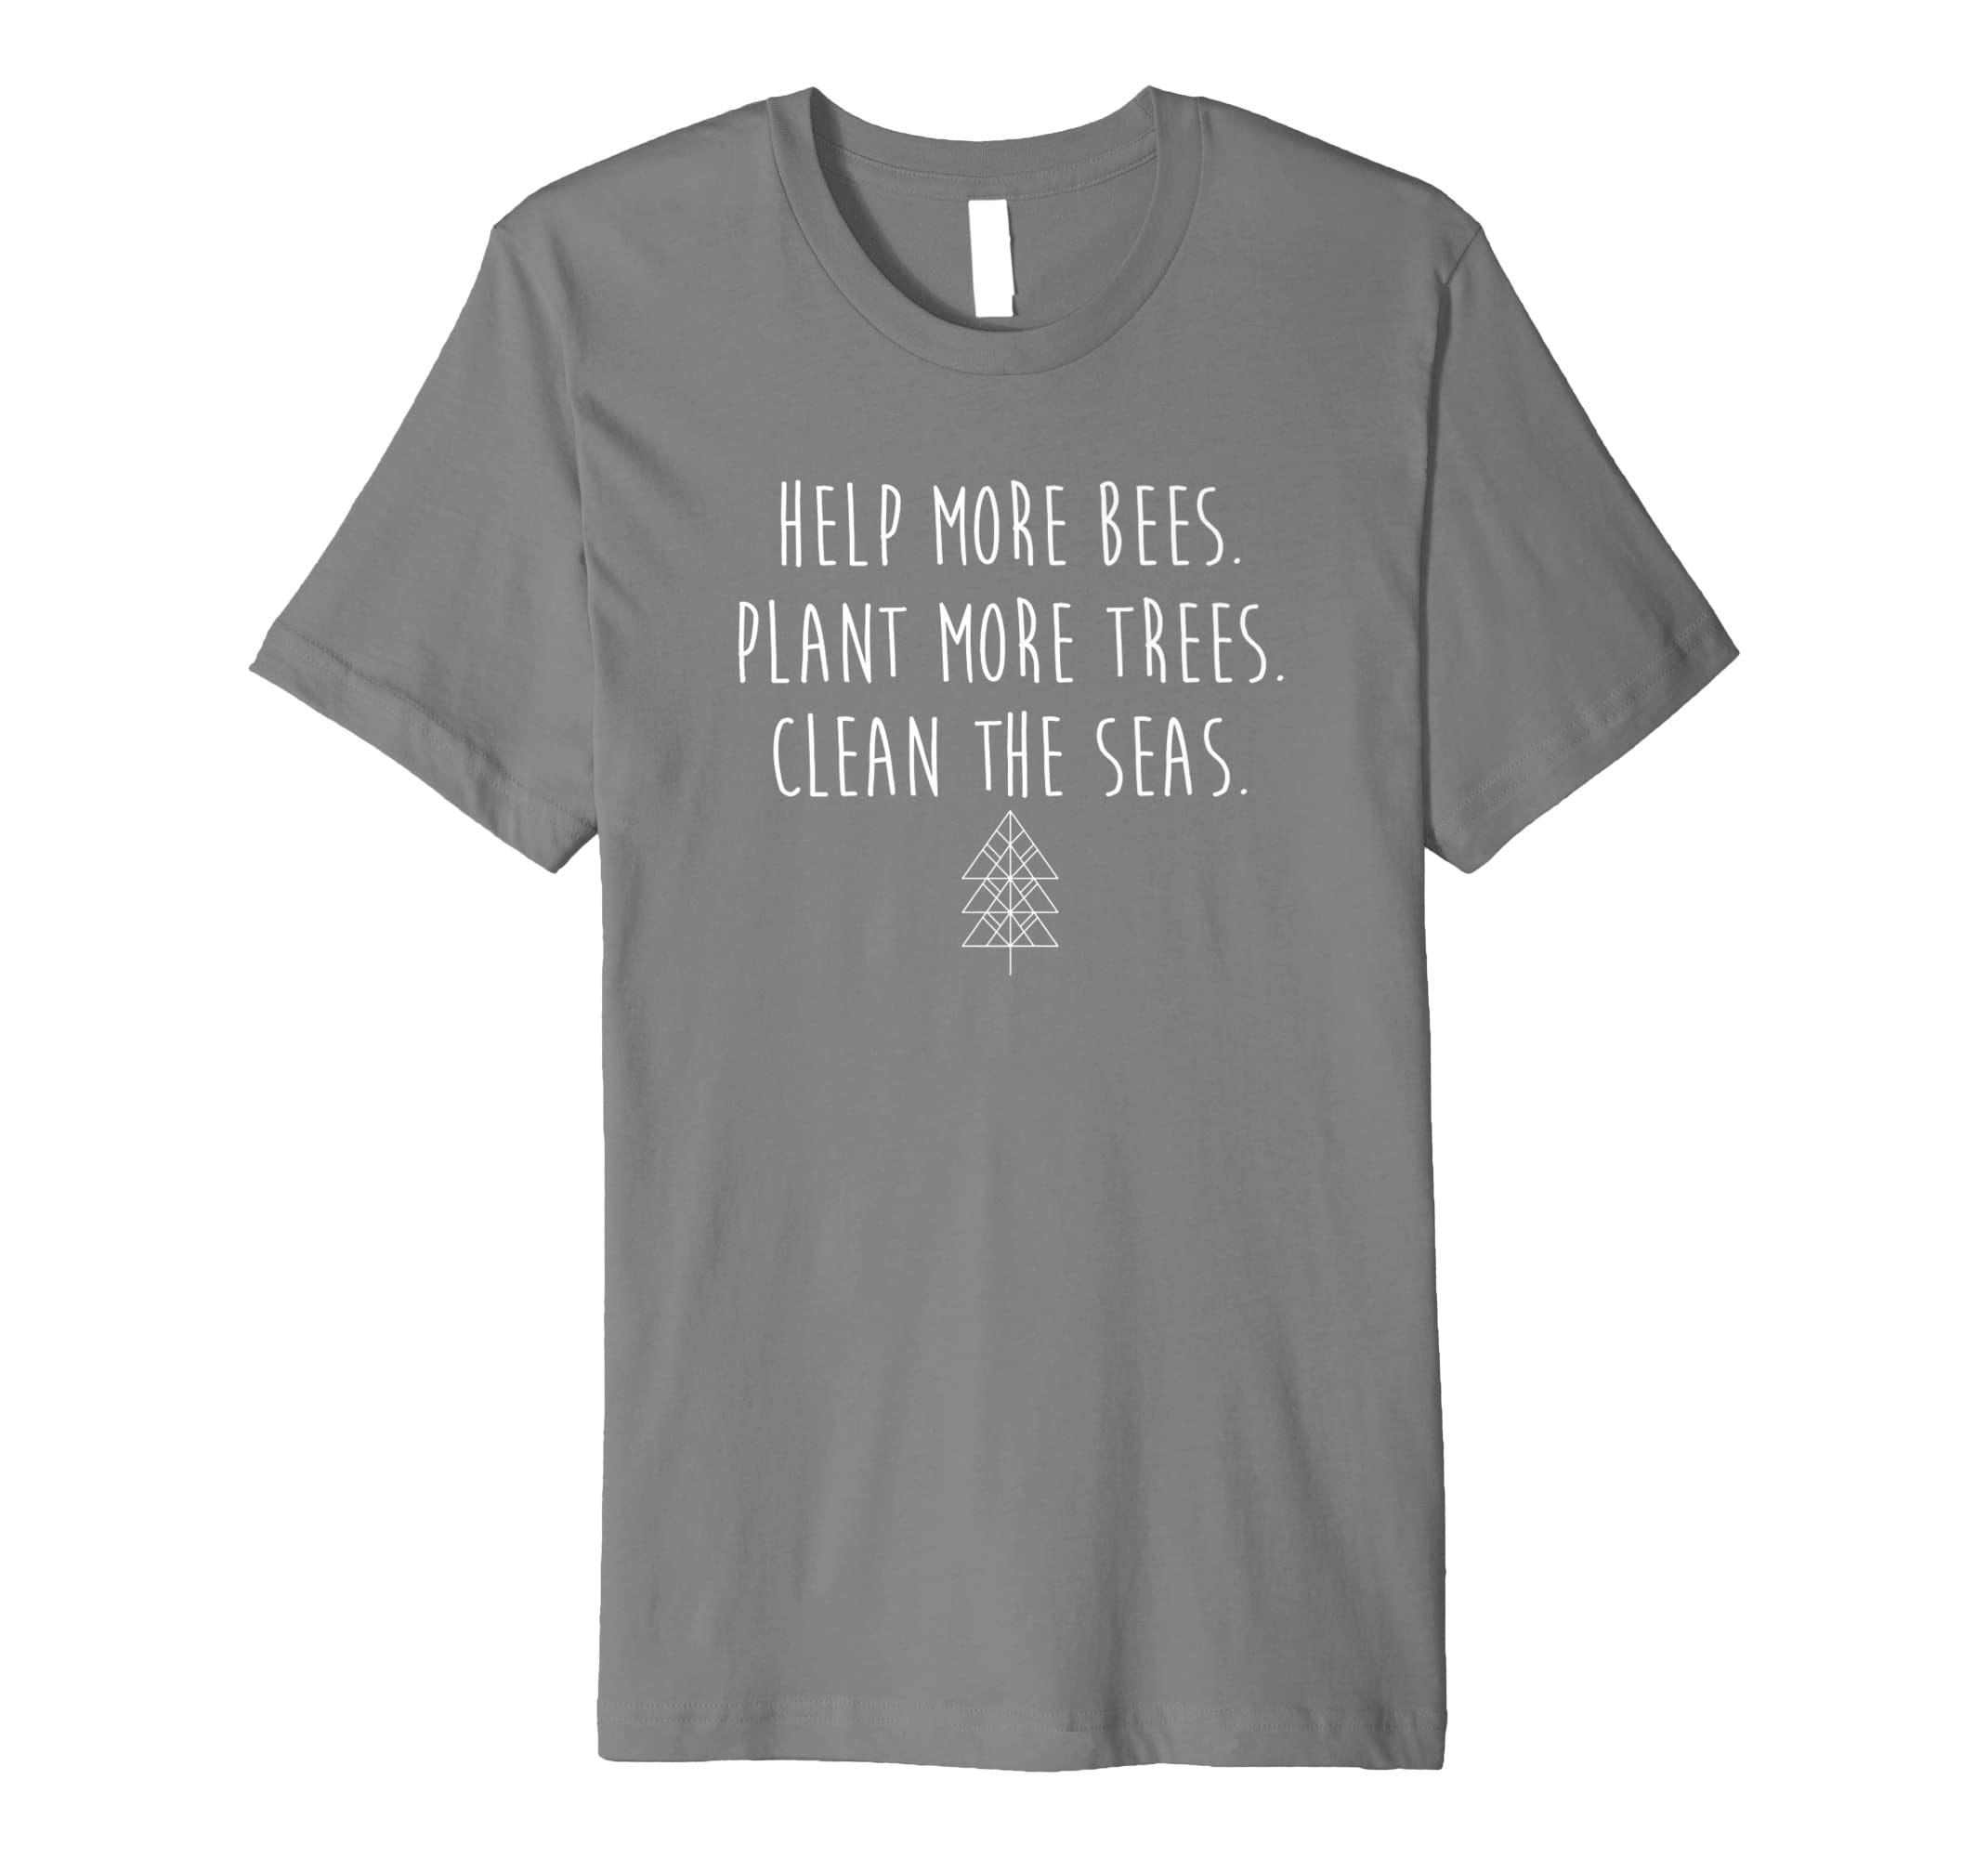 fd447b006 Help More Bees Plant More Trees Clean The Seas T-Shirt: Amazon.co.uk:  Clothing